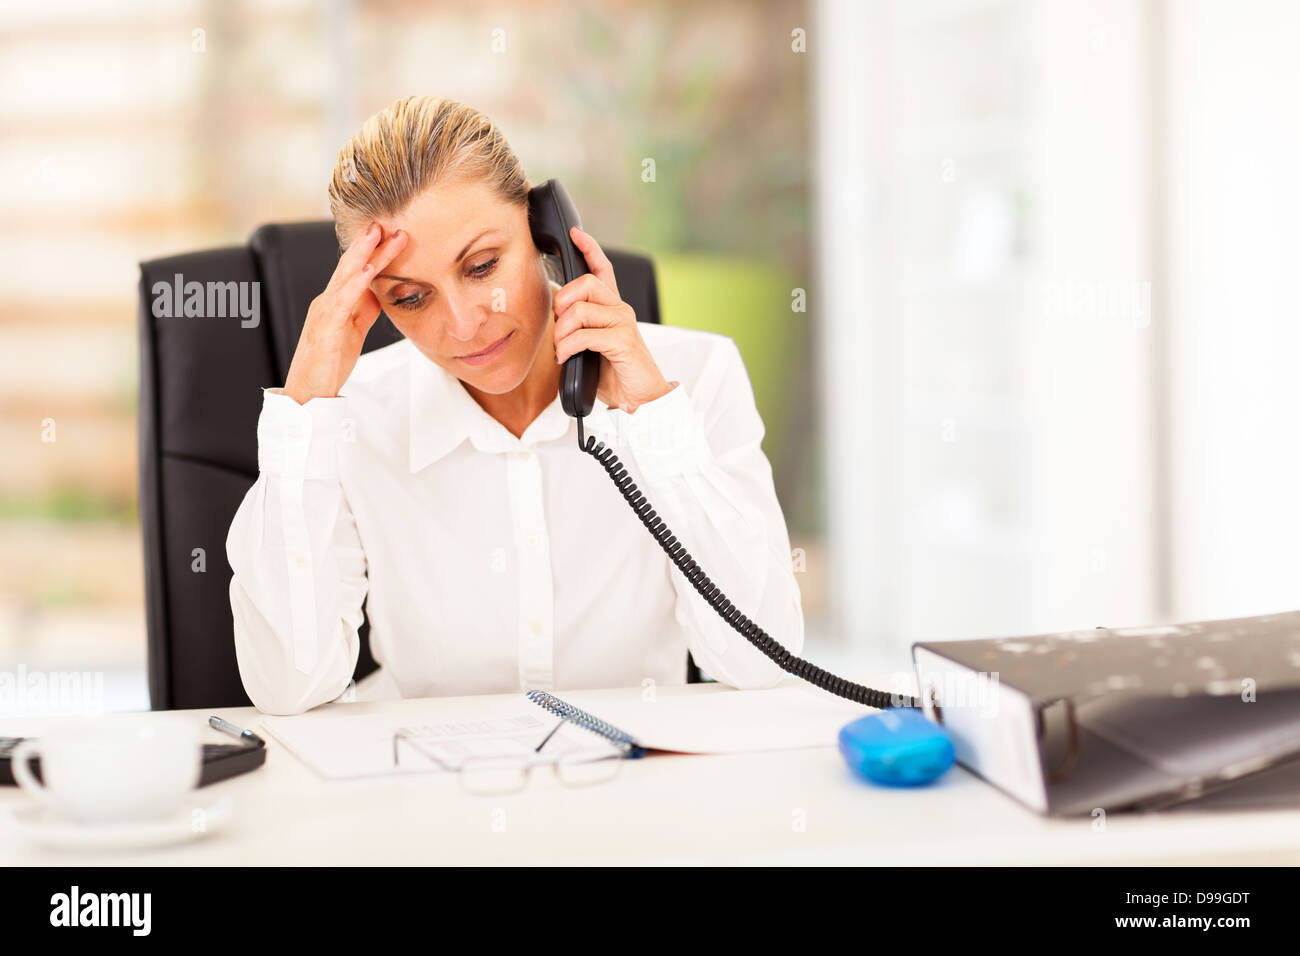 serious middle aged businesswoman talking on phone - Stock Image